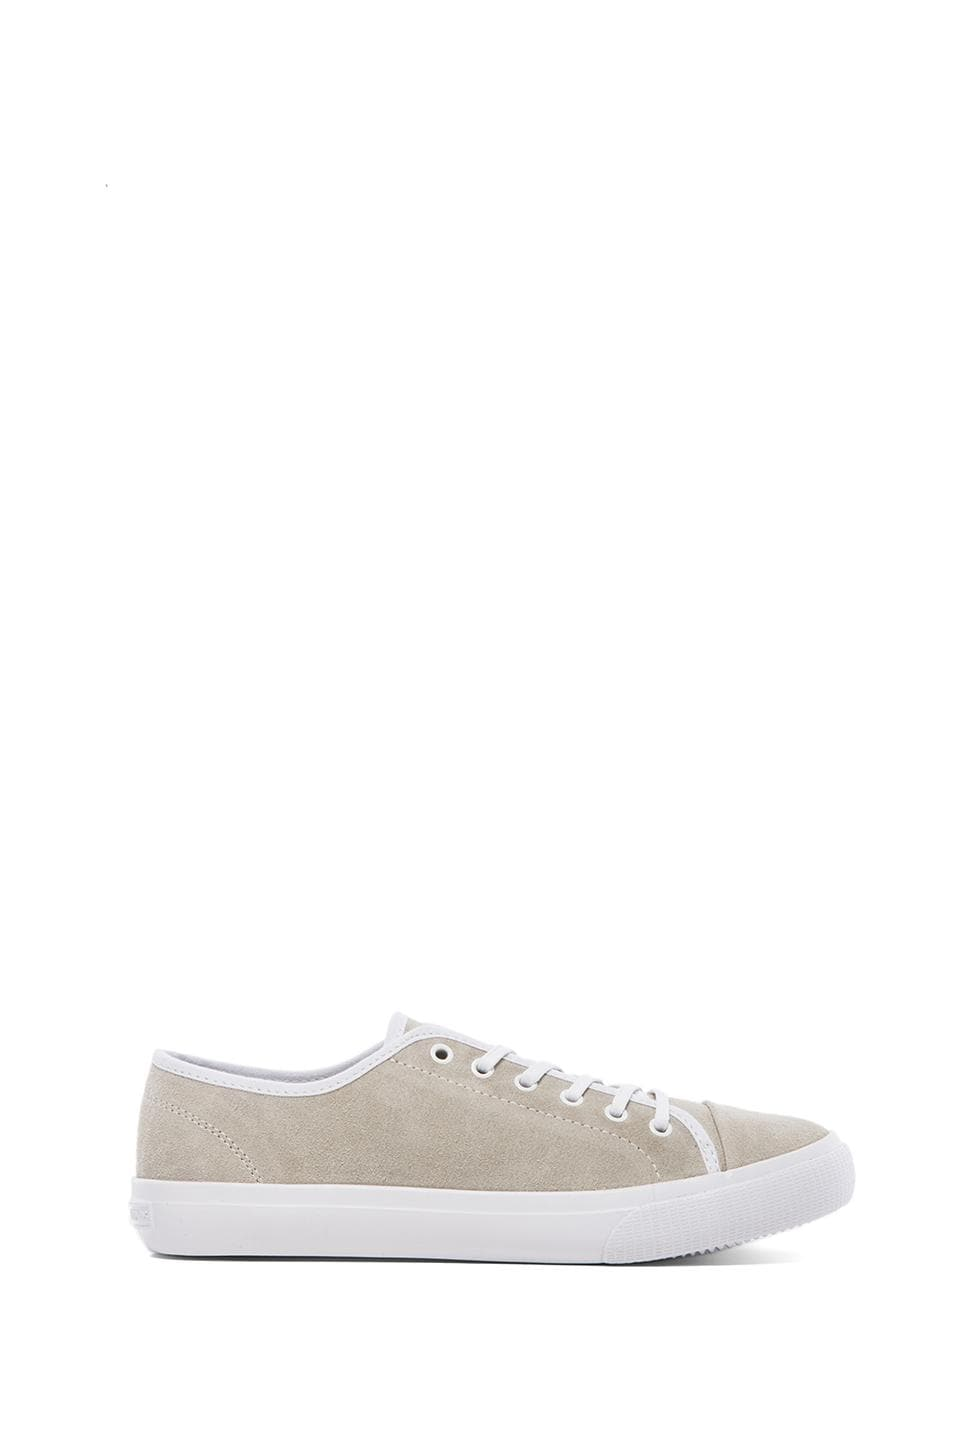 Generic Surplus Wellington in Off White Suede